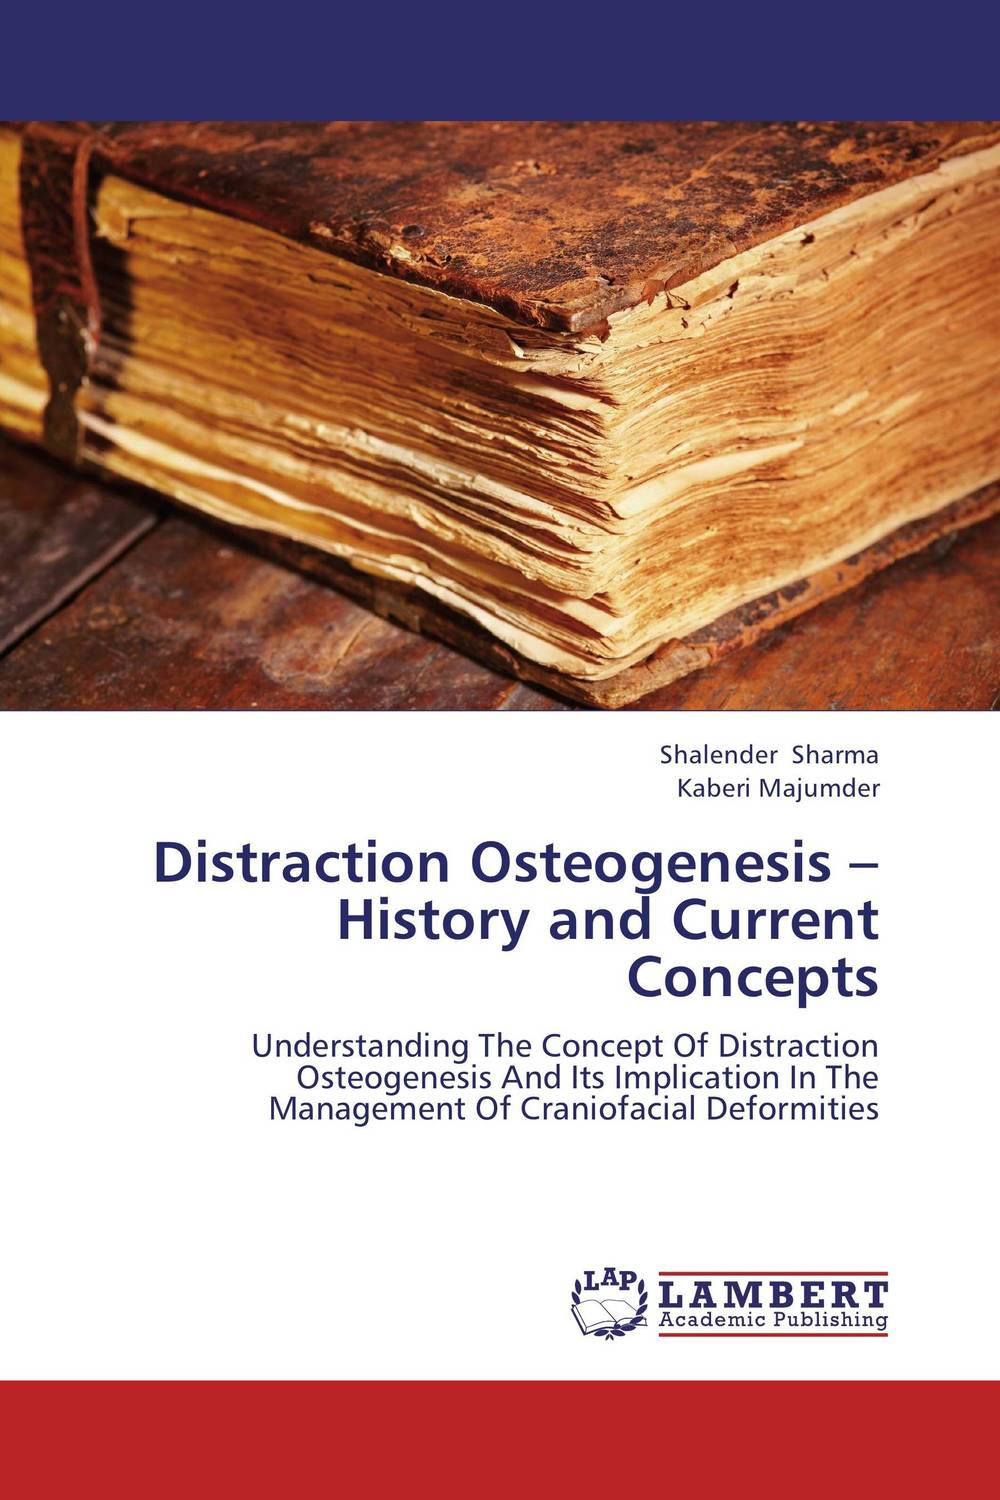 Distraction Osteogenesis – History and Current Concepts driven to distraction